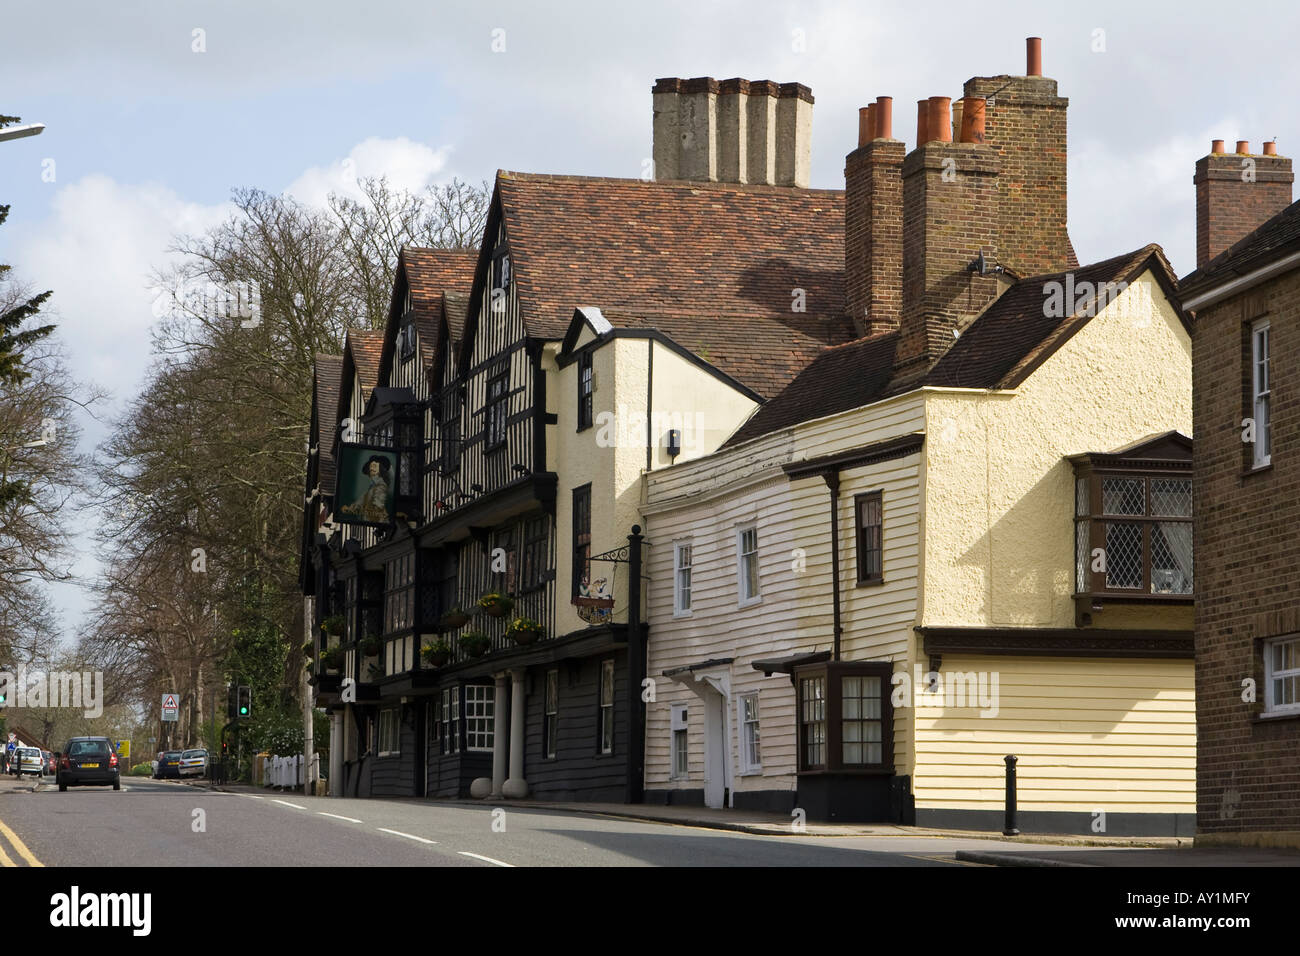 Ye Olde King's Head public house, Chigwell, Essex, UK. - Stock Image